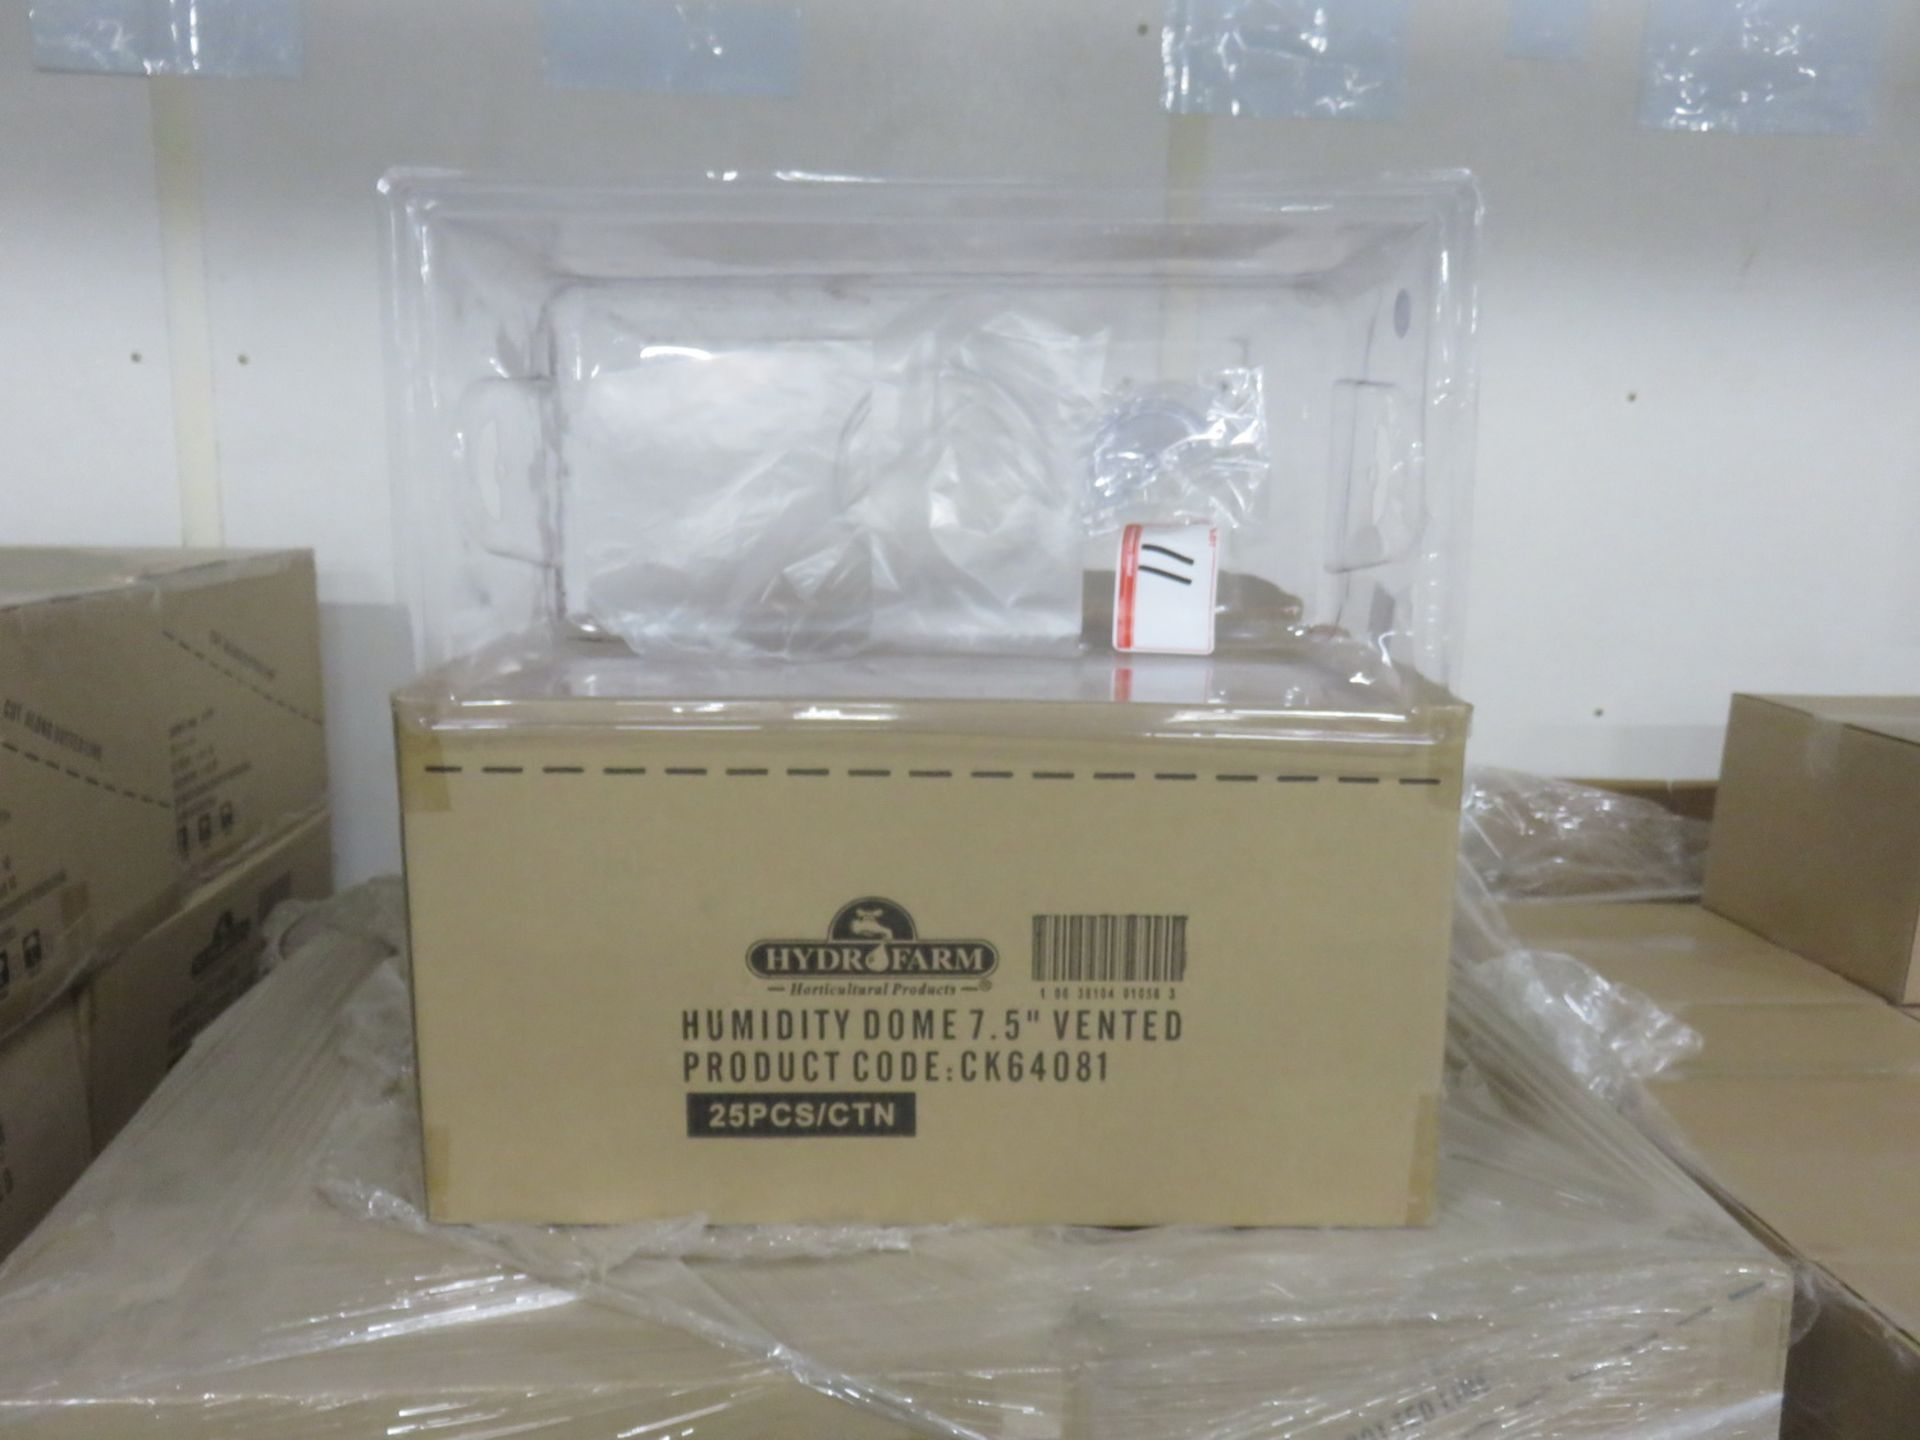 "Lot 11A - BOXES - HYDROFARM HUMIDITY DOME 7.5"" VENTED CONTAINERS (25 PCS/BOX)"